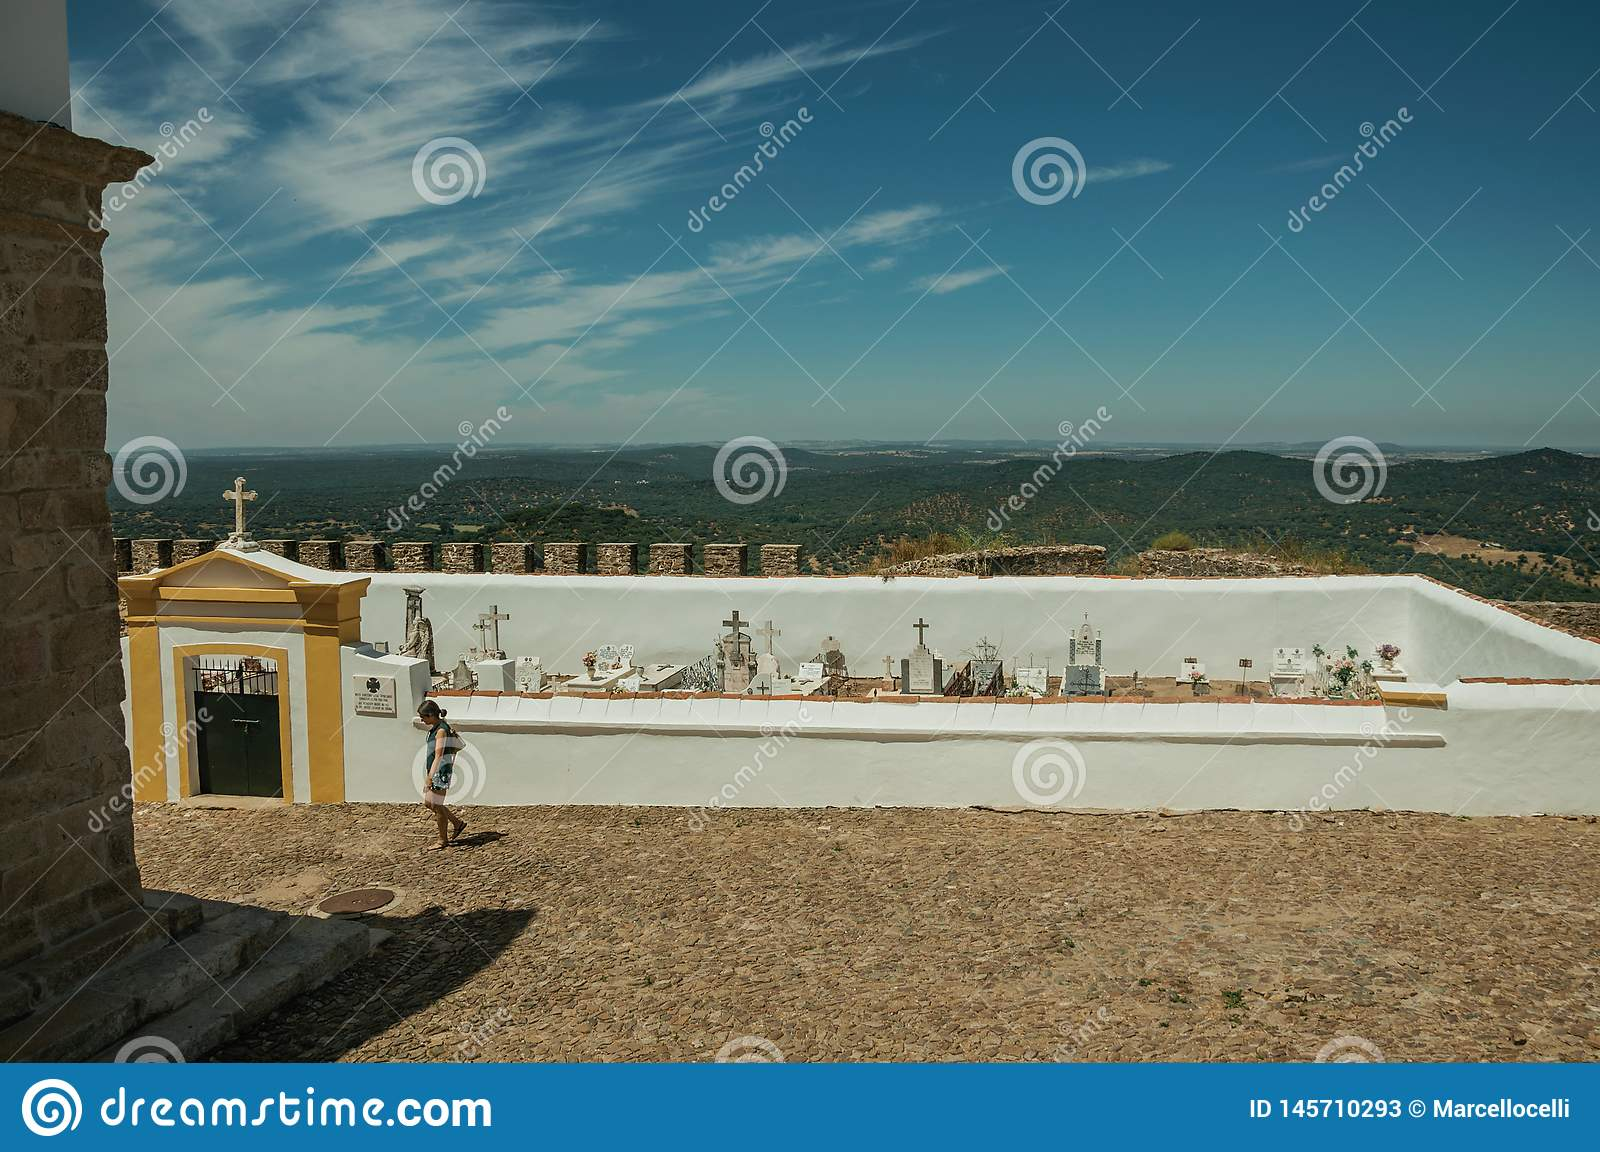 Woman walking in front of cemetery at Evoramonte